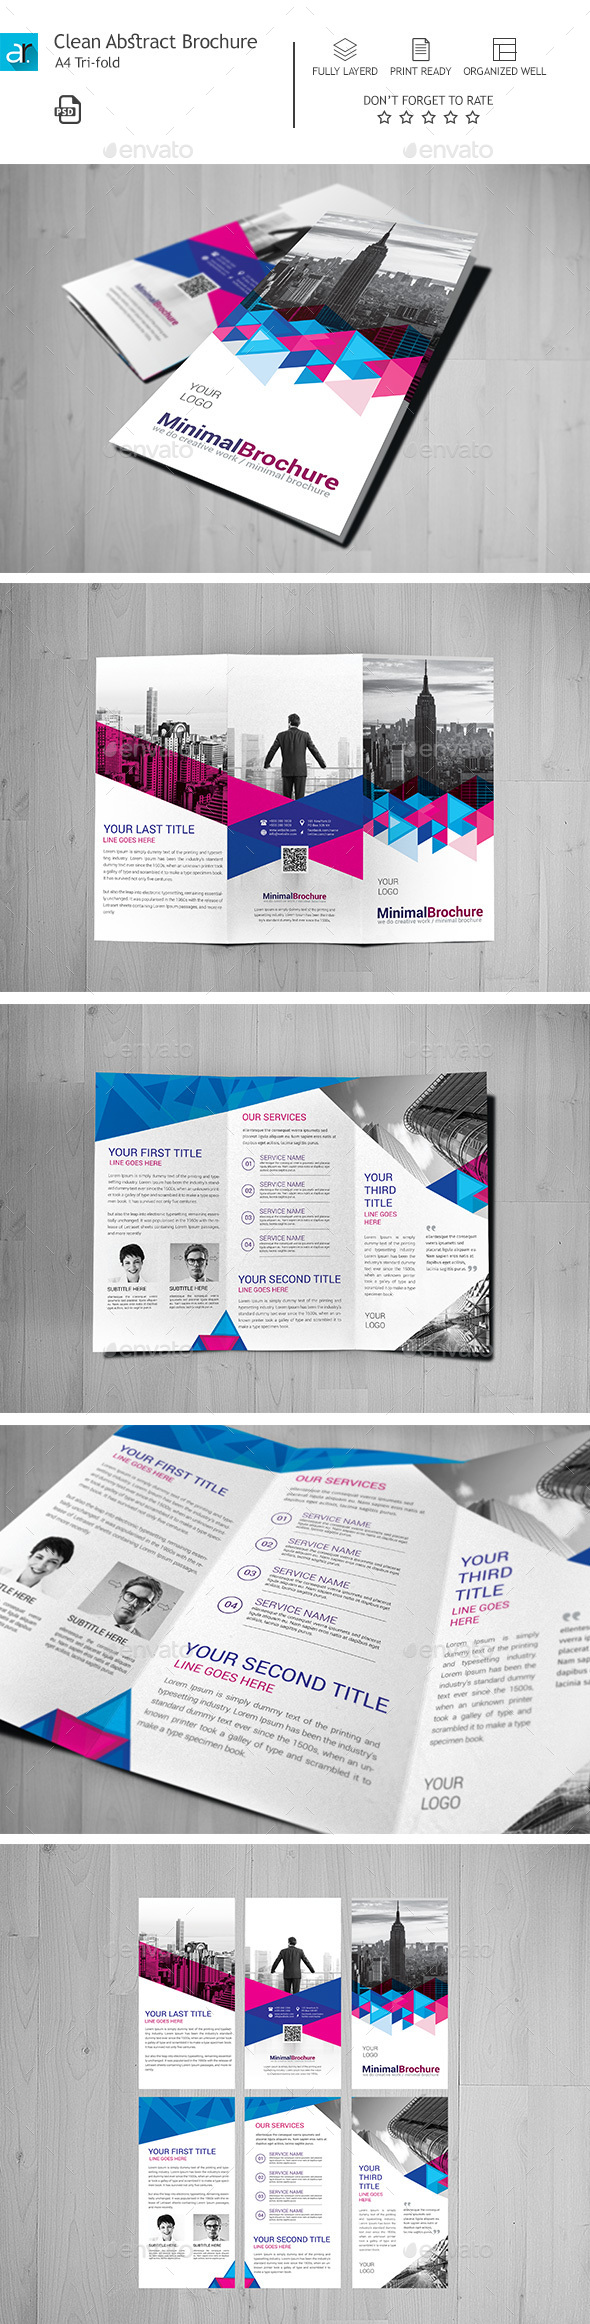 Clean Abstract Tri Fold Brochure Template Psd Design Download Http